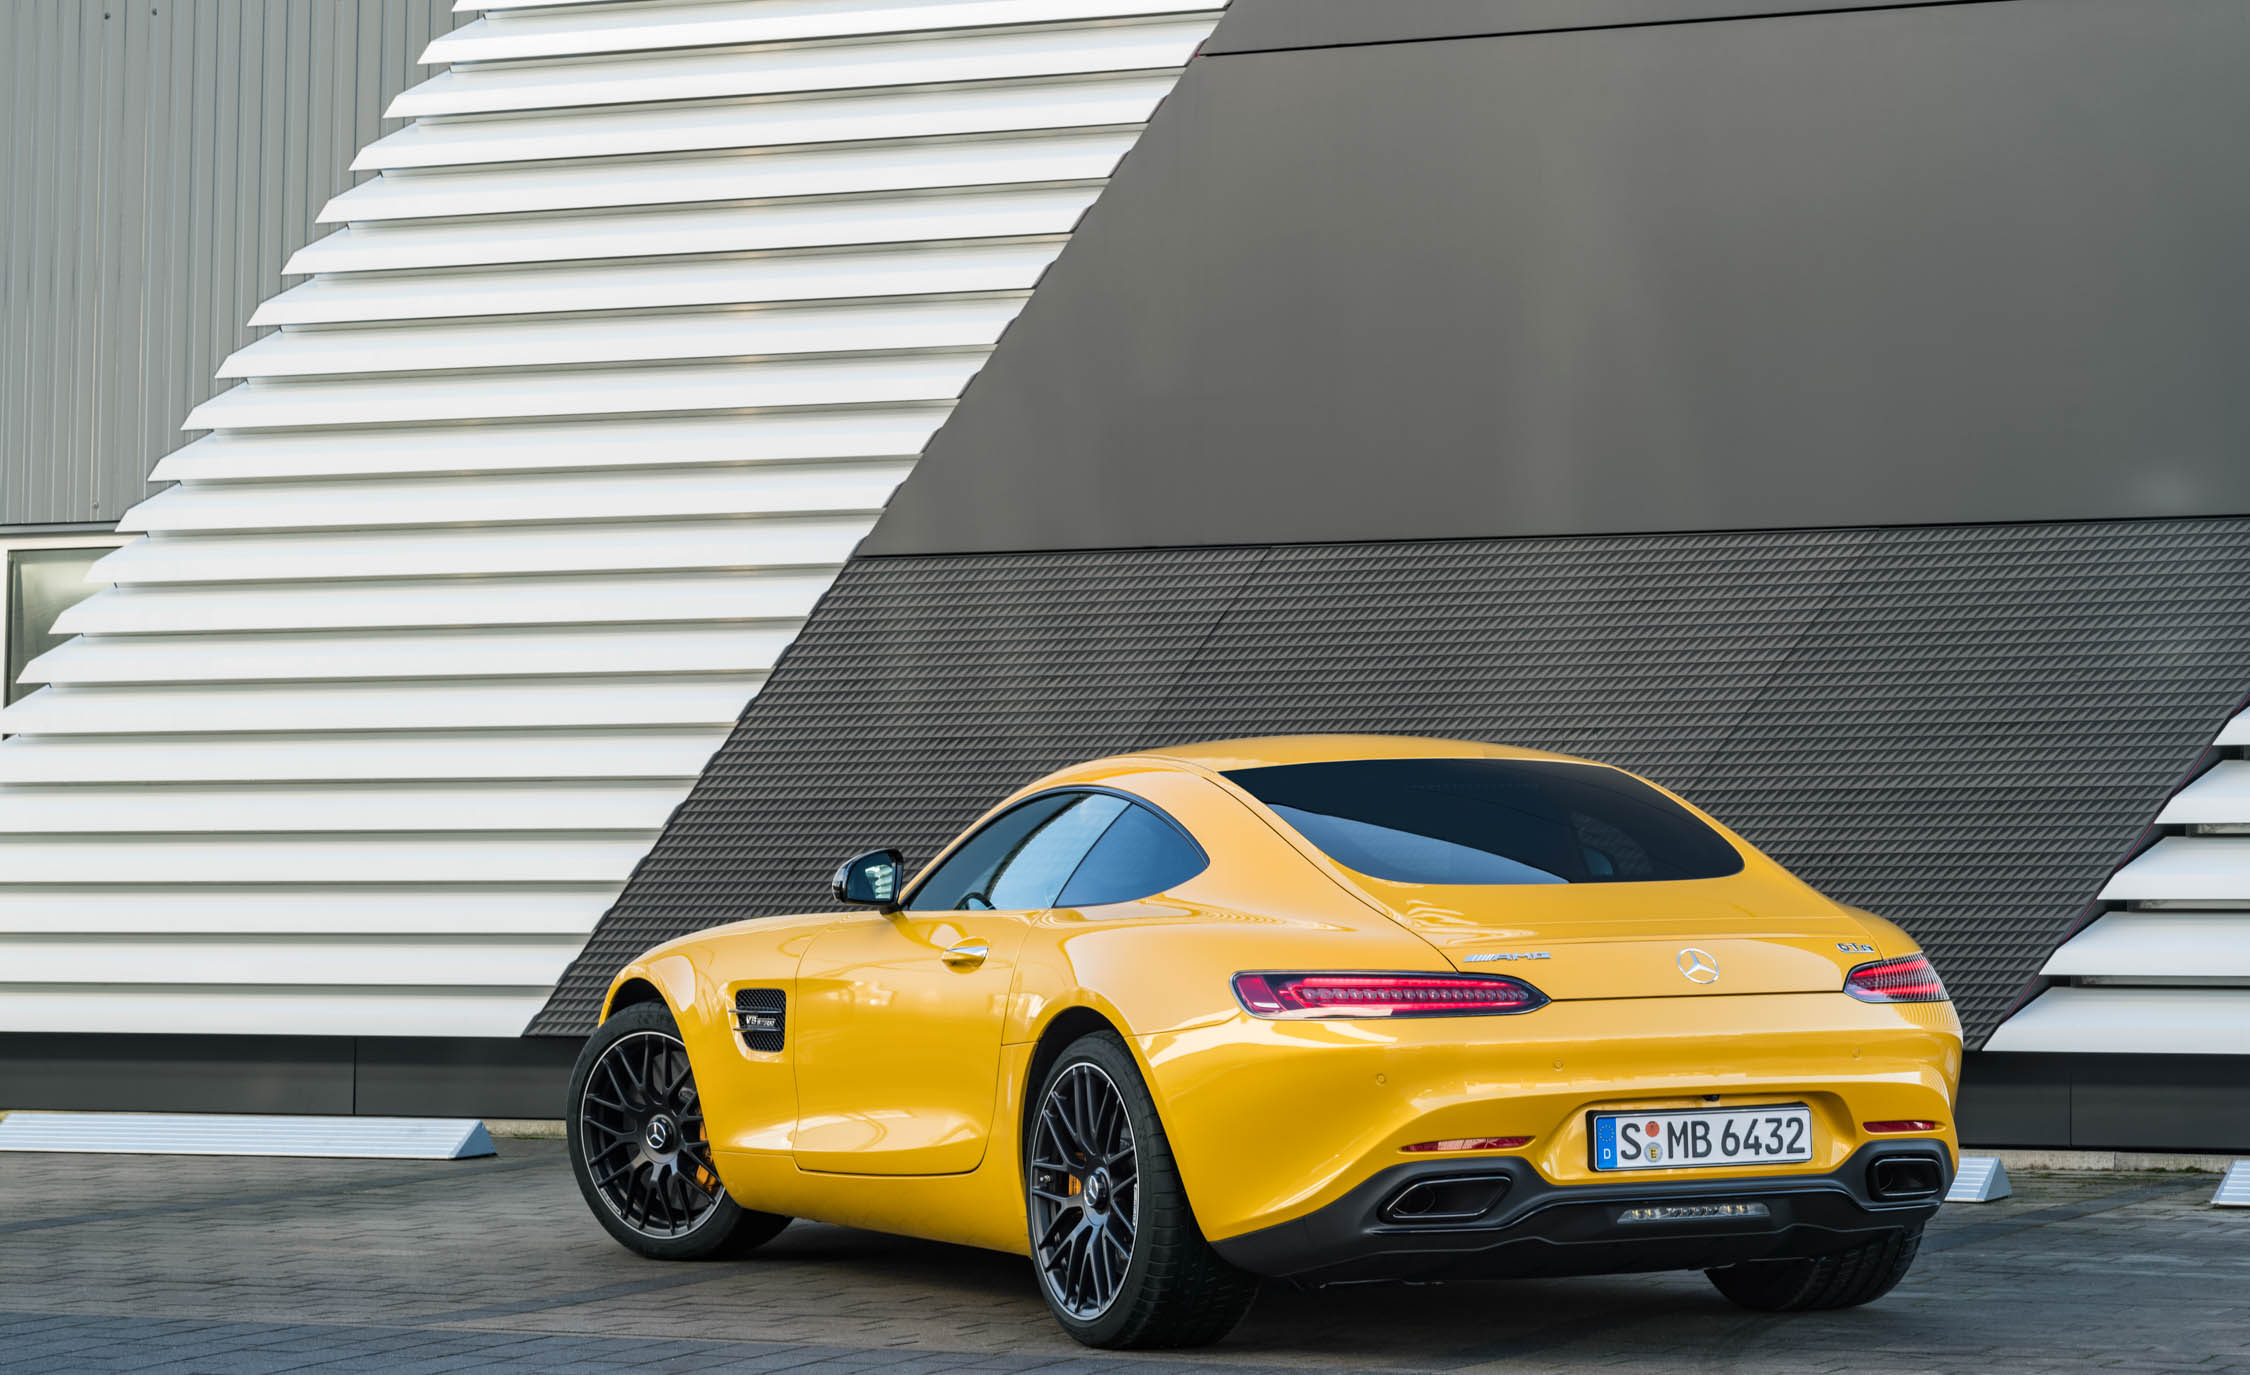 2018 Mercedes Amg Gt S Exterior Rear And Side (View 2 of 23)